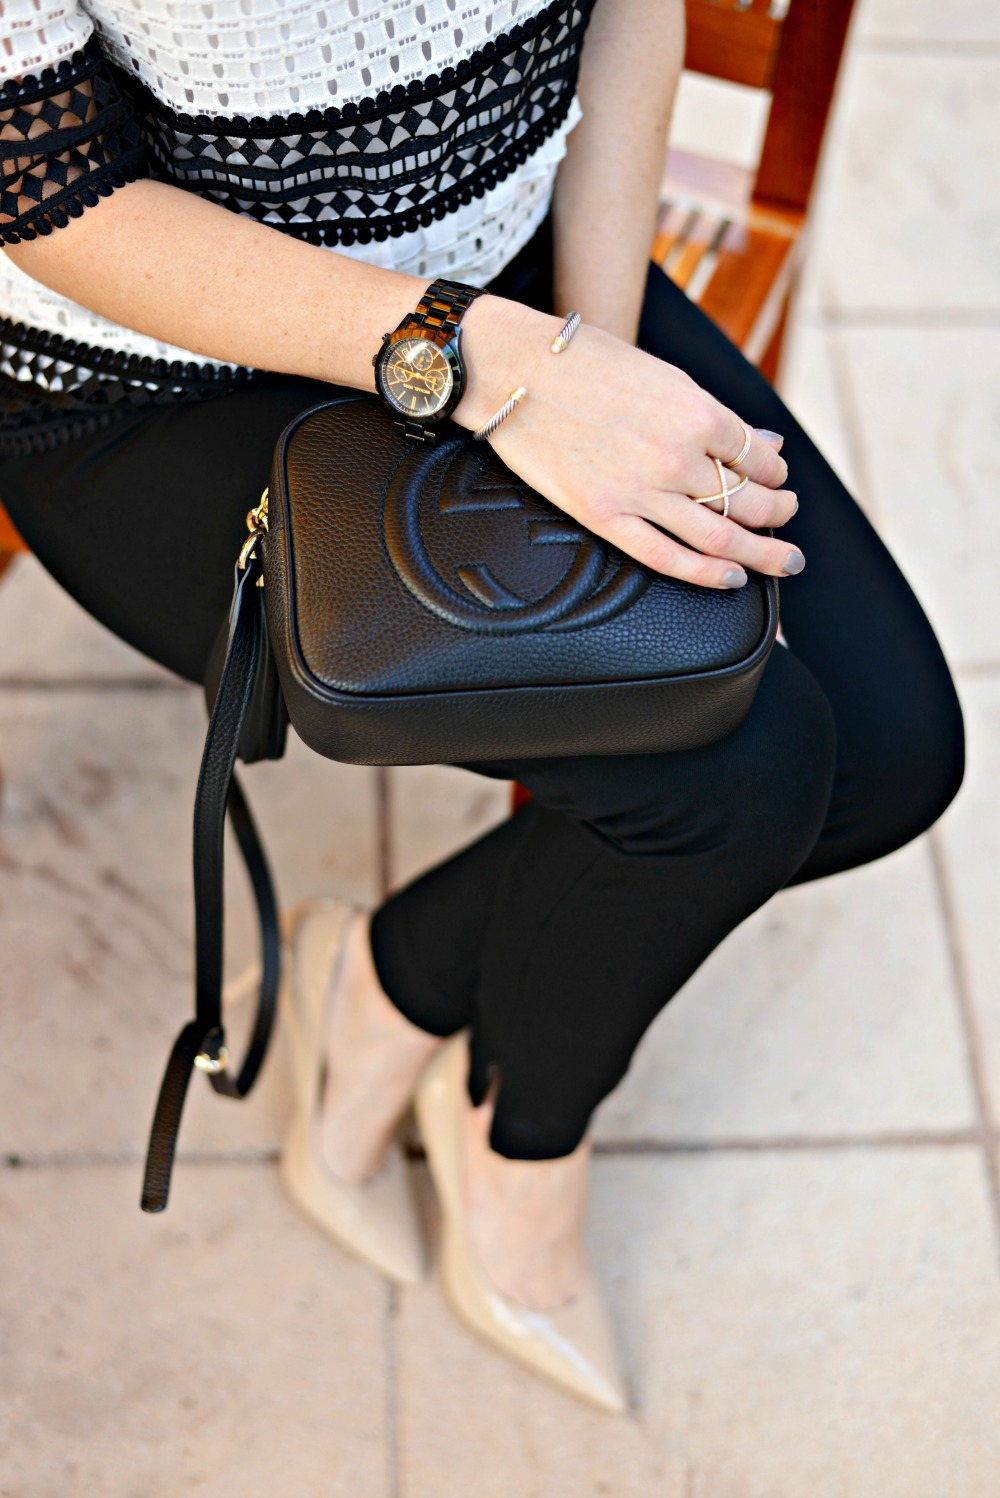 Gucci disco bag for work // the modern savvy